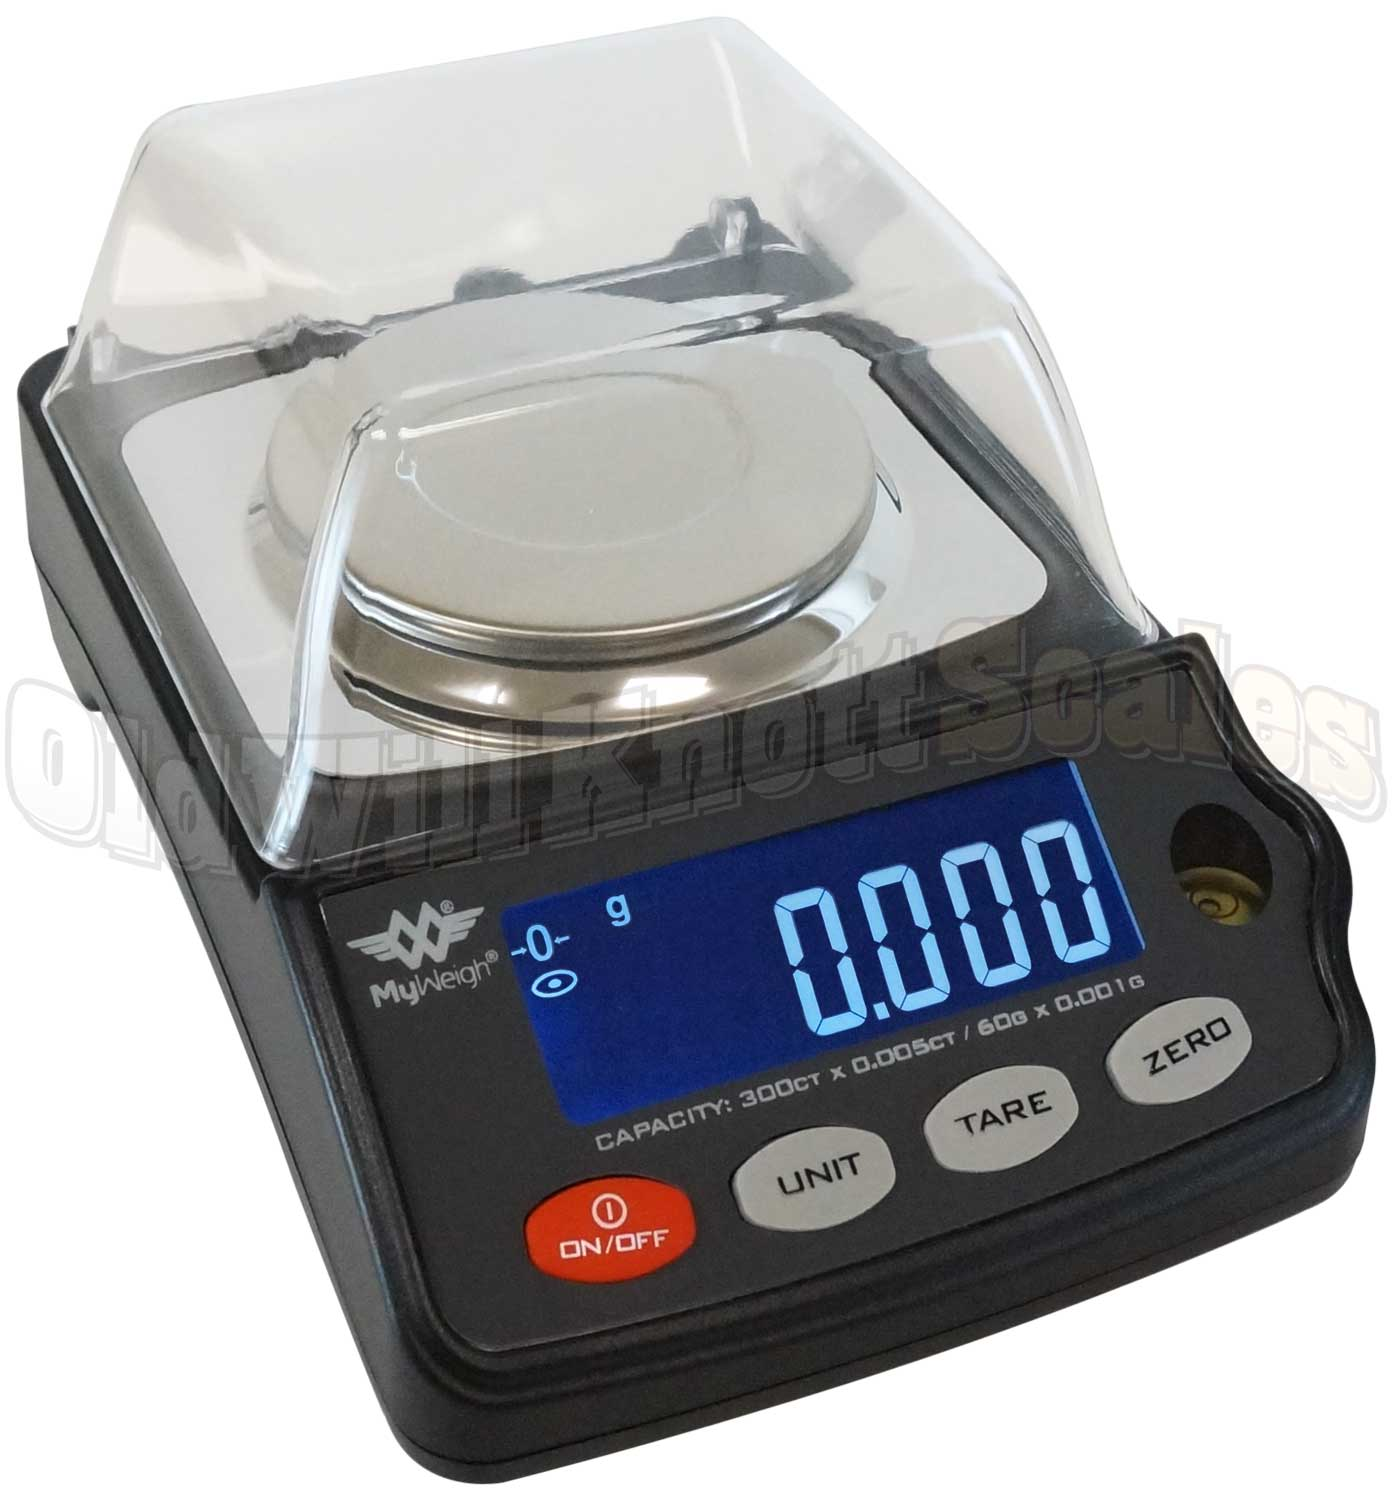 Precision Scale My Weigh Gempro 300 Compact Precision Scale With Storage Case